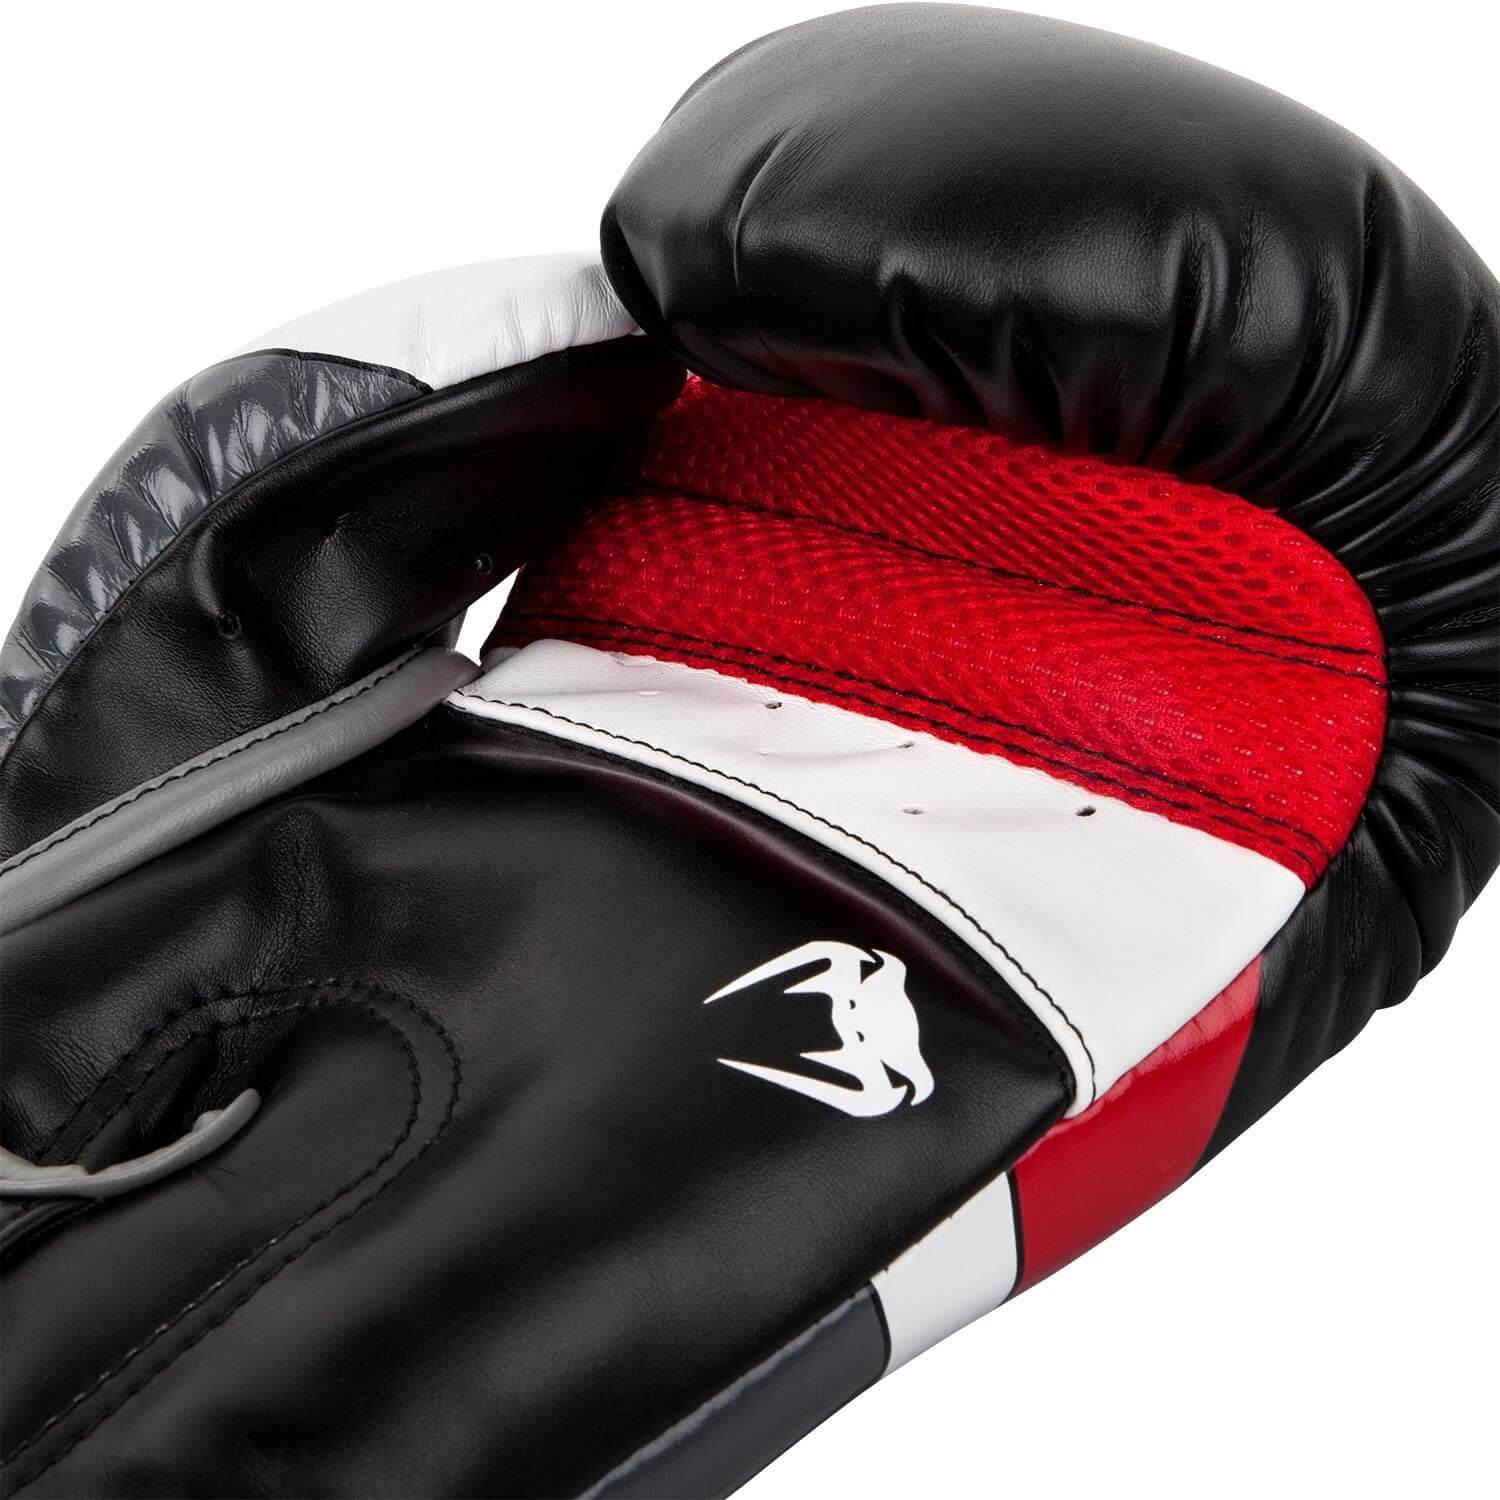 Venum Elite Boxing Gloves - grip